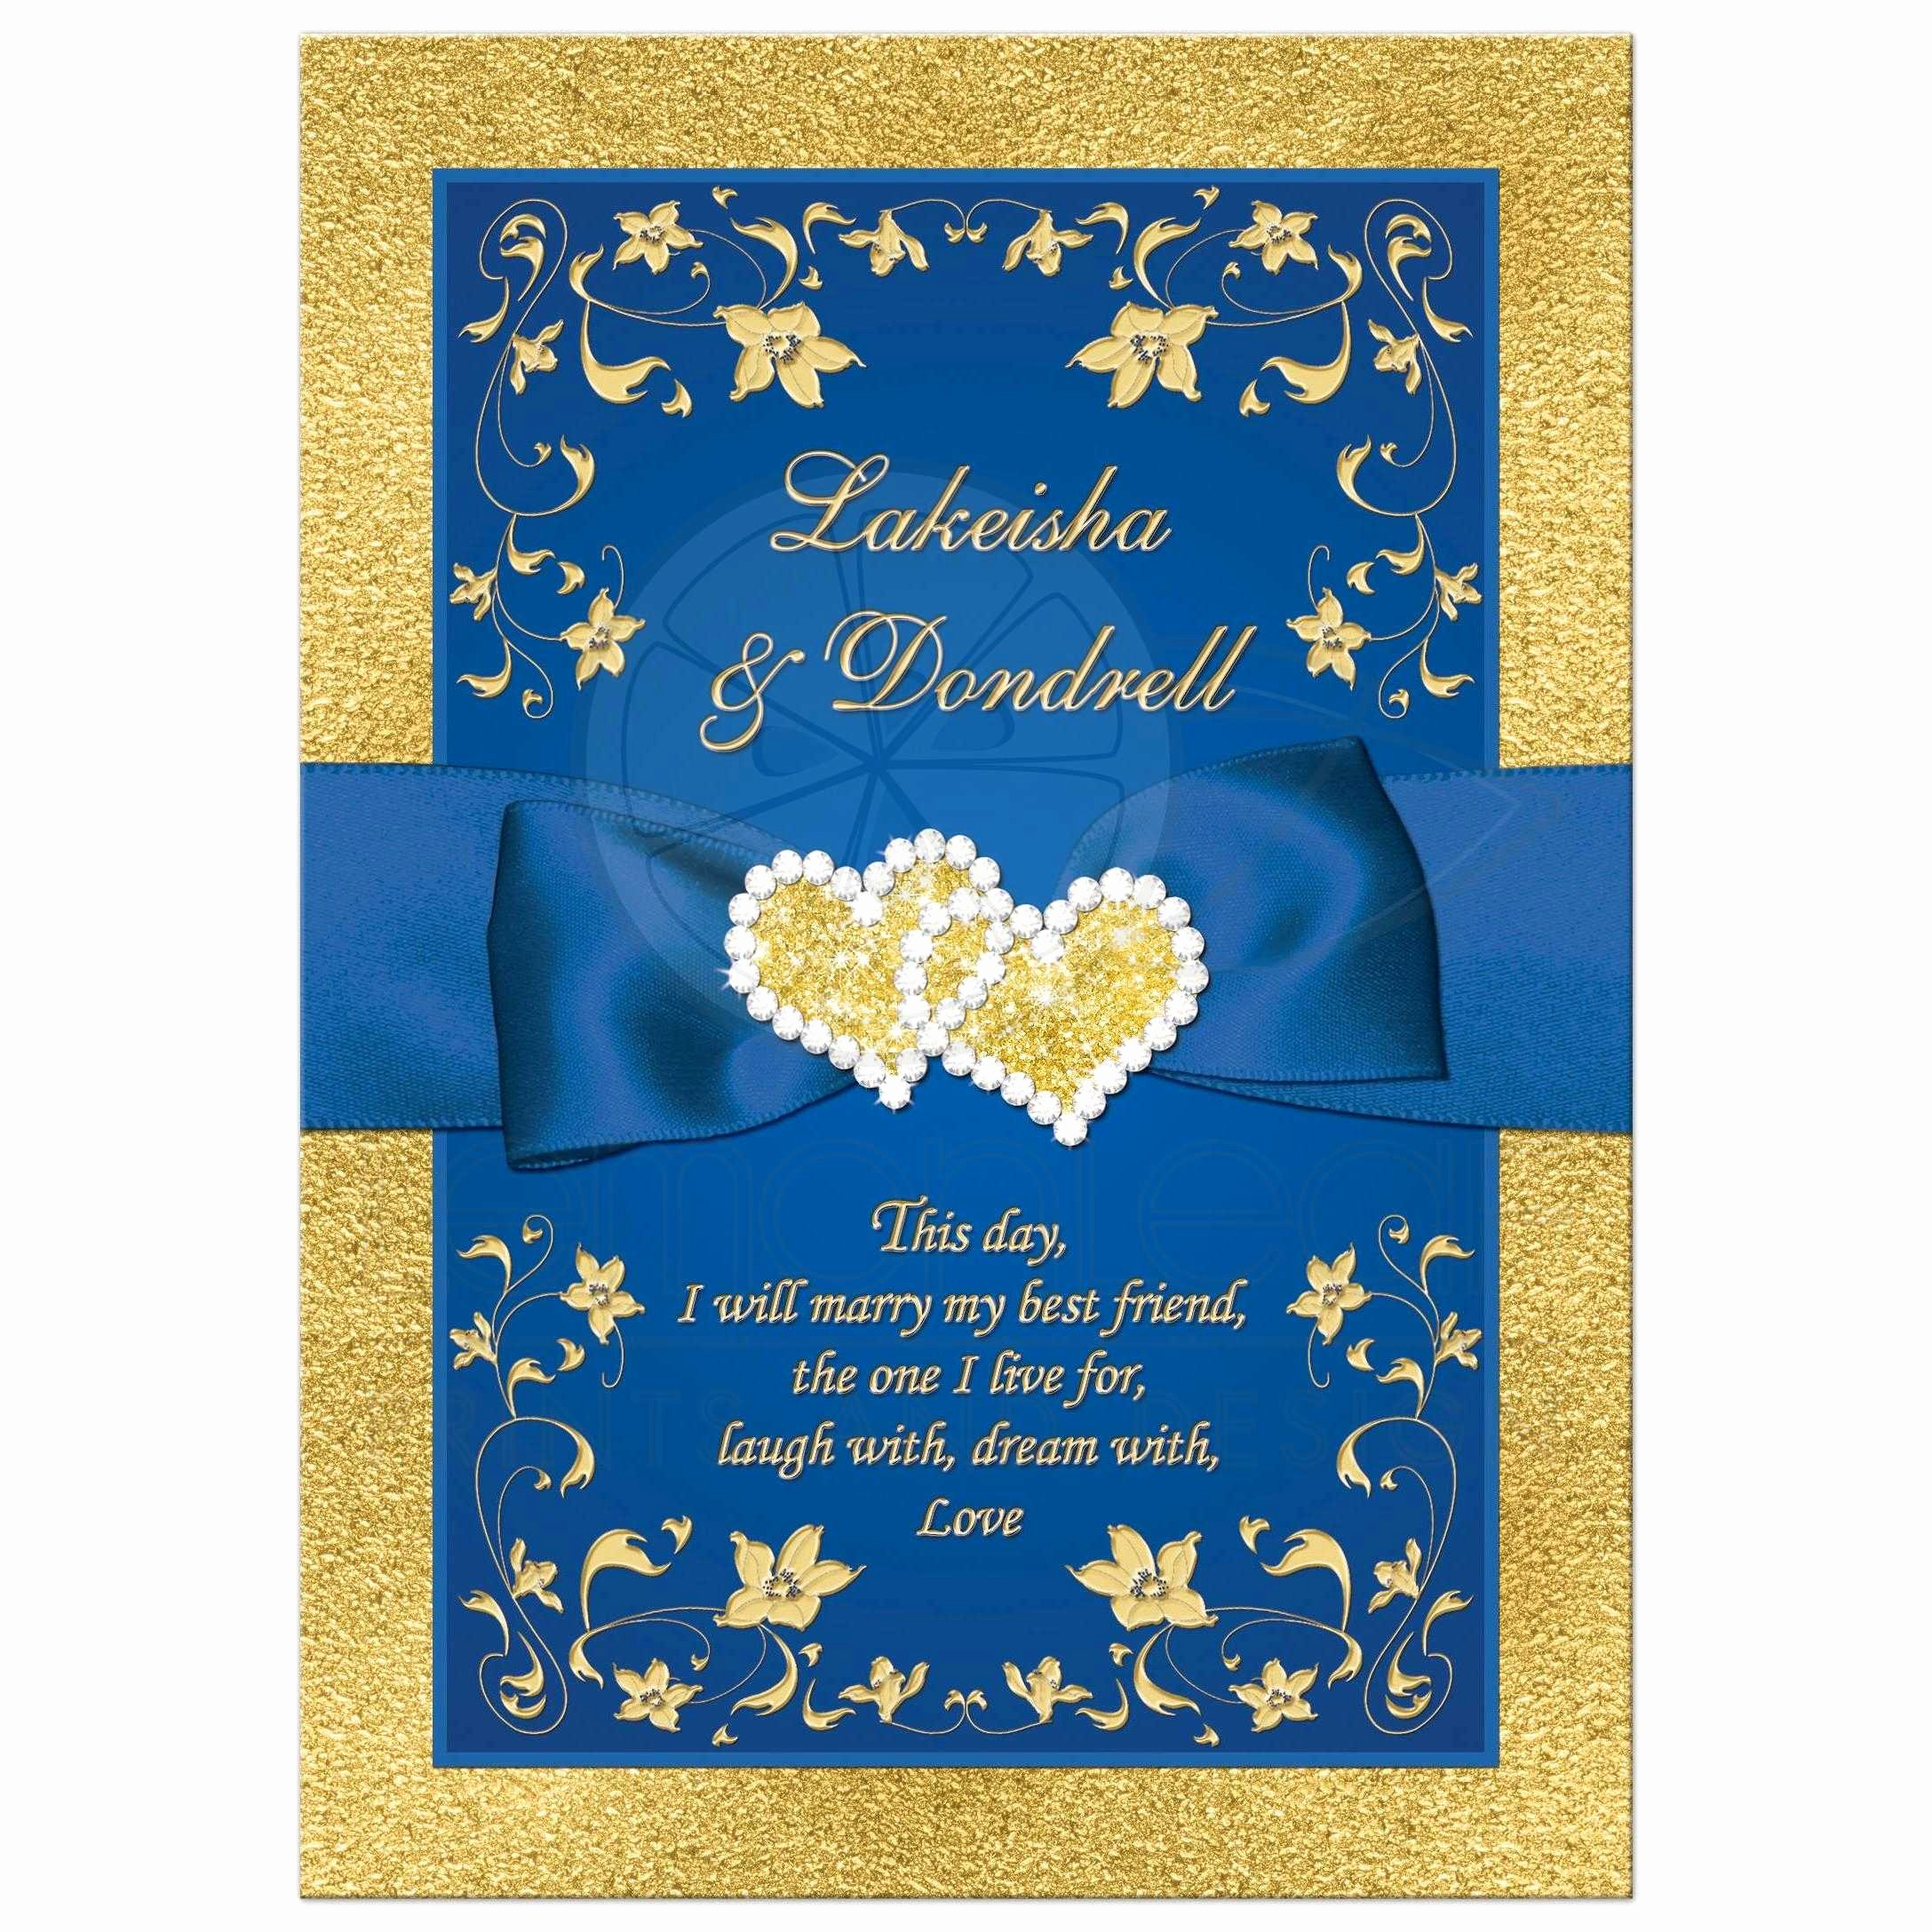 Blue and Gold Invitation Template Lovely Wedding Invitation Royal Blue Faux Gold Foil Floral